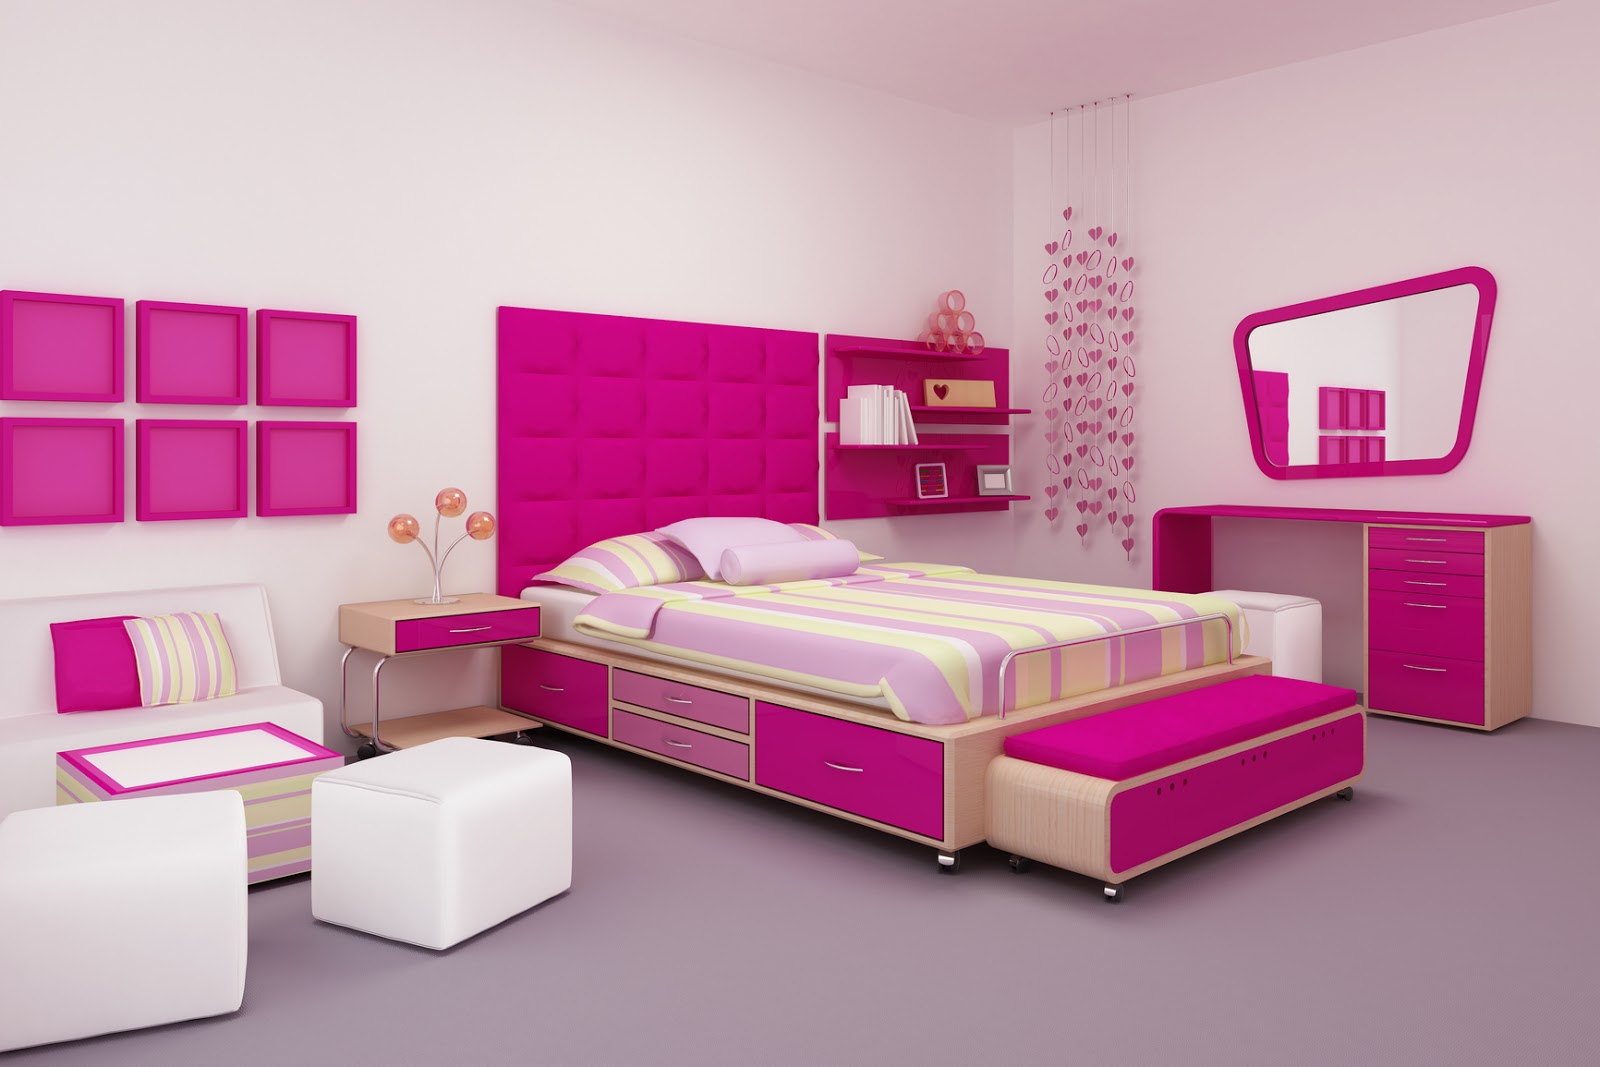 Banco de im genes 7 im genes de stock para ver disfrutar for Design your own teenage bedroom